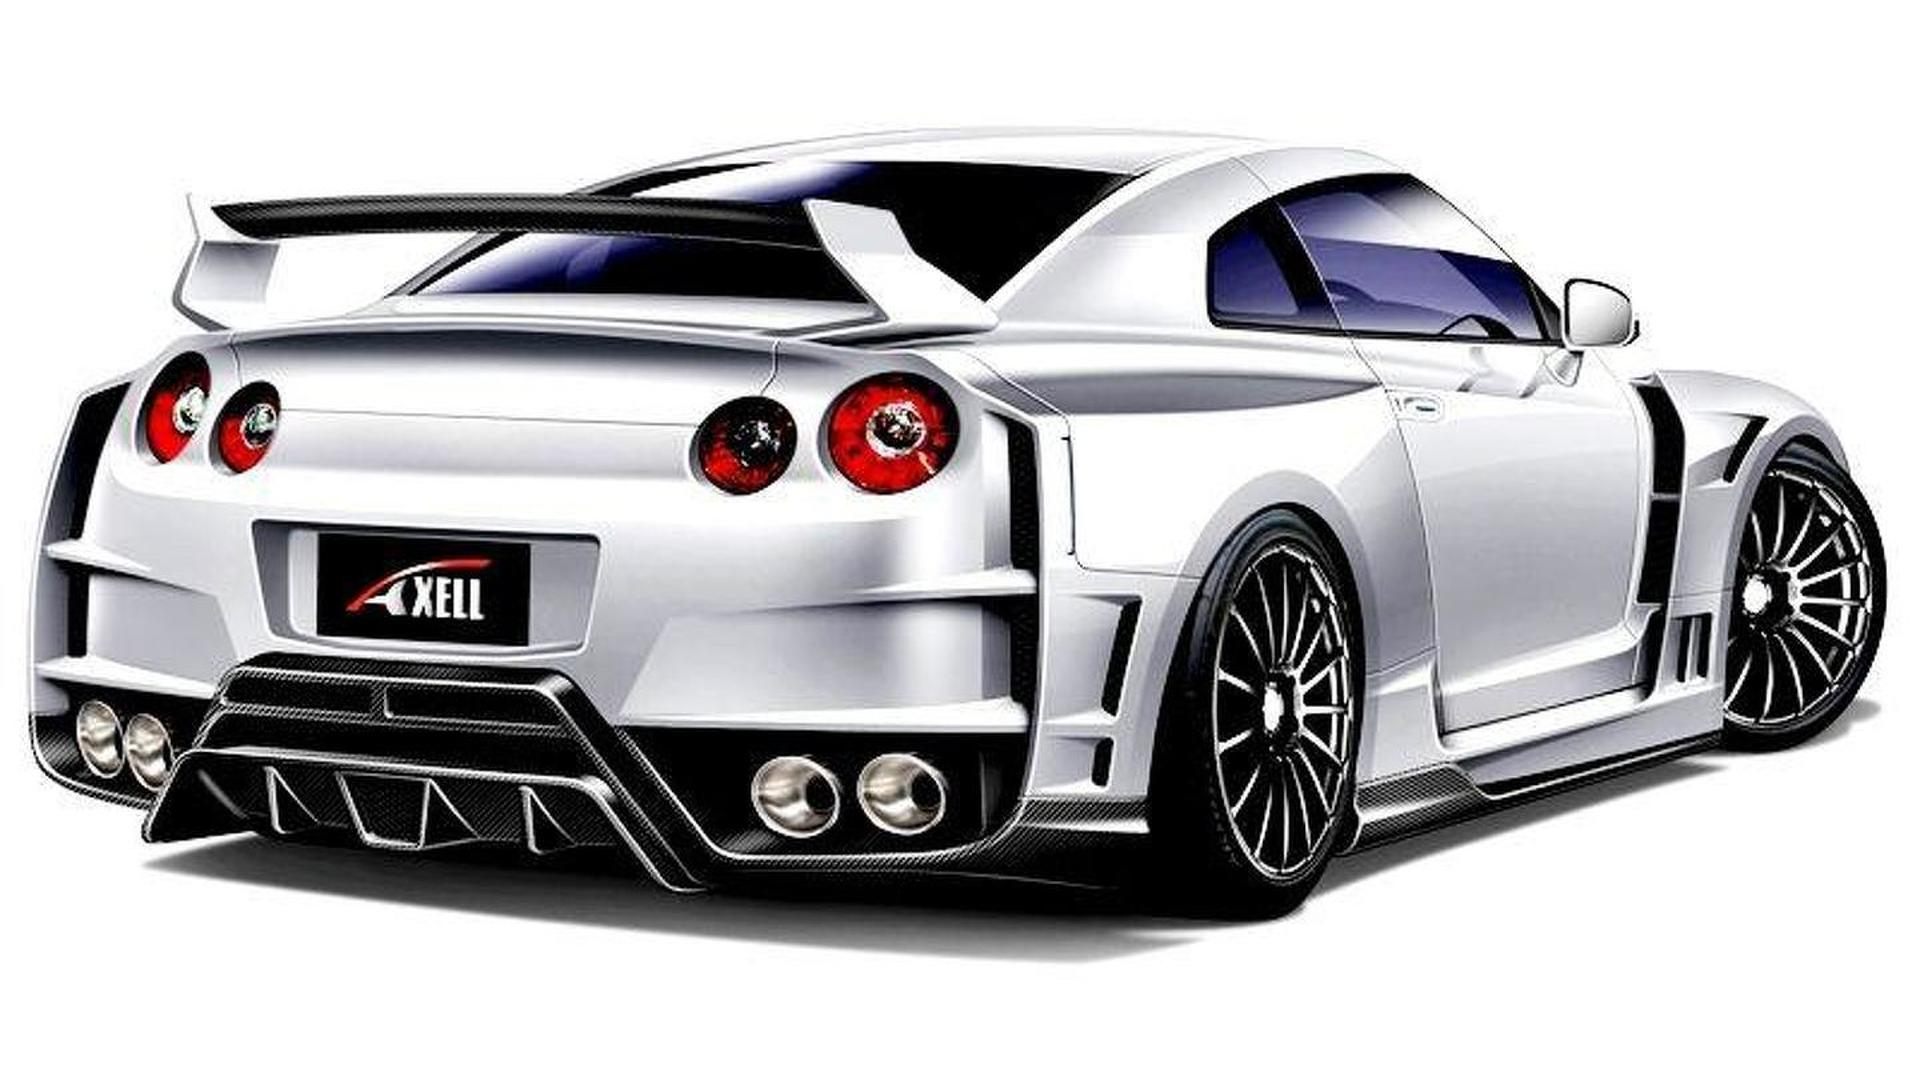 Axell Auto previews widebody kit for Nissan GT-R